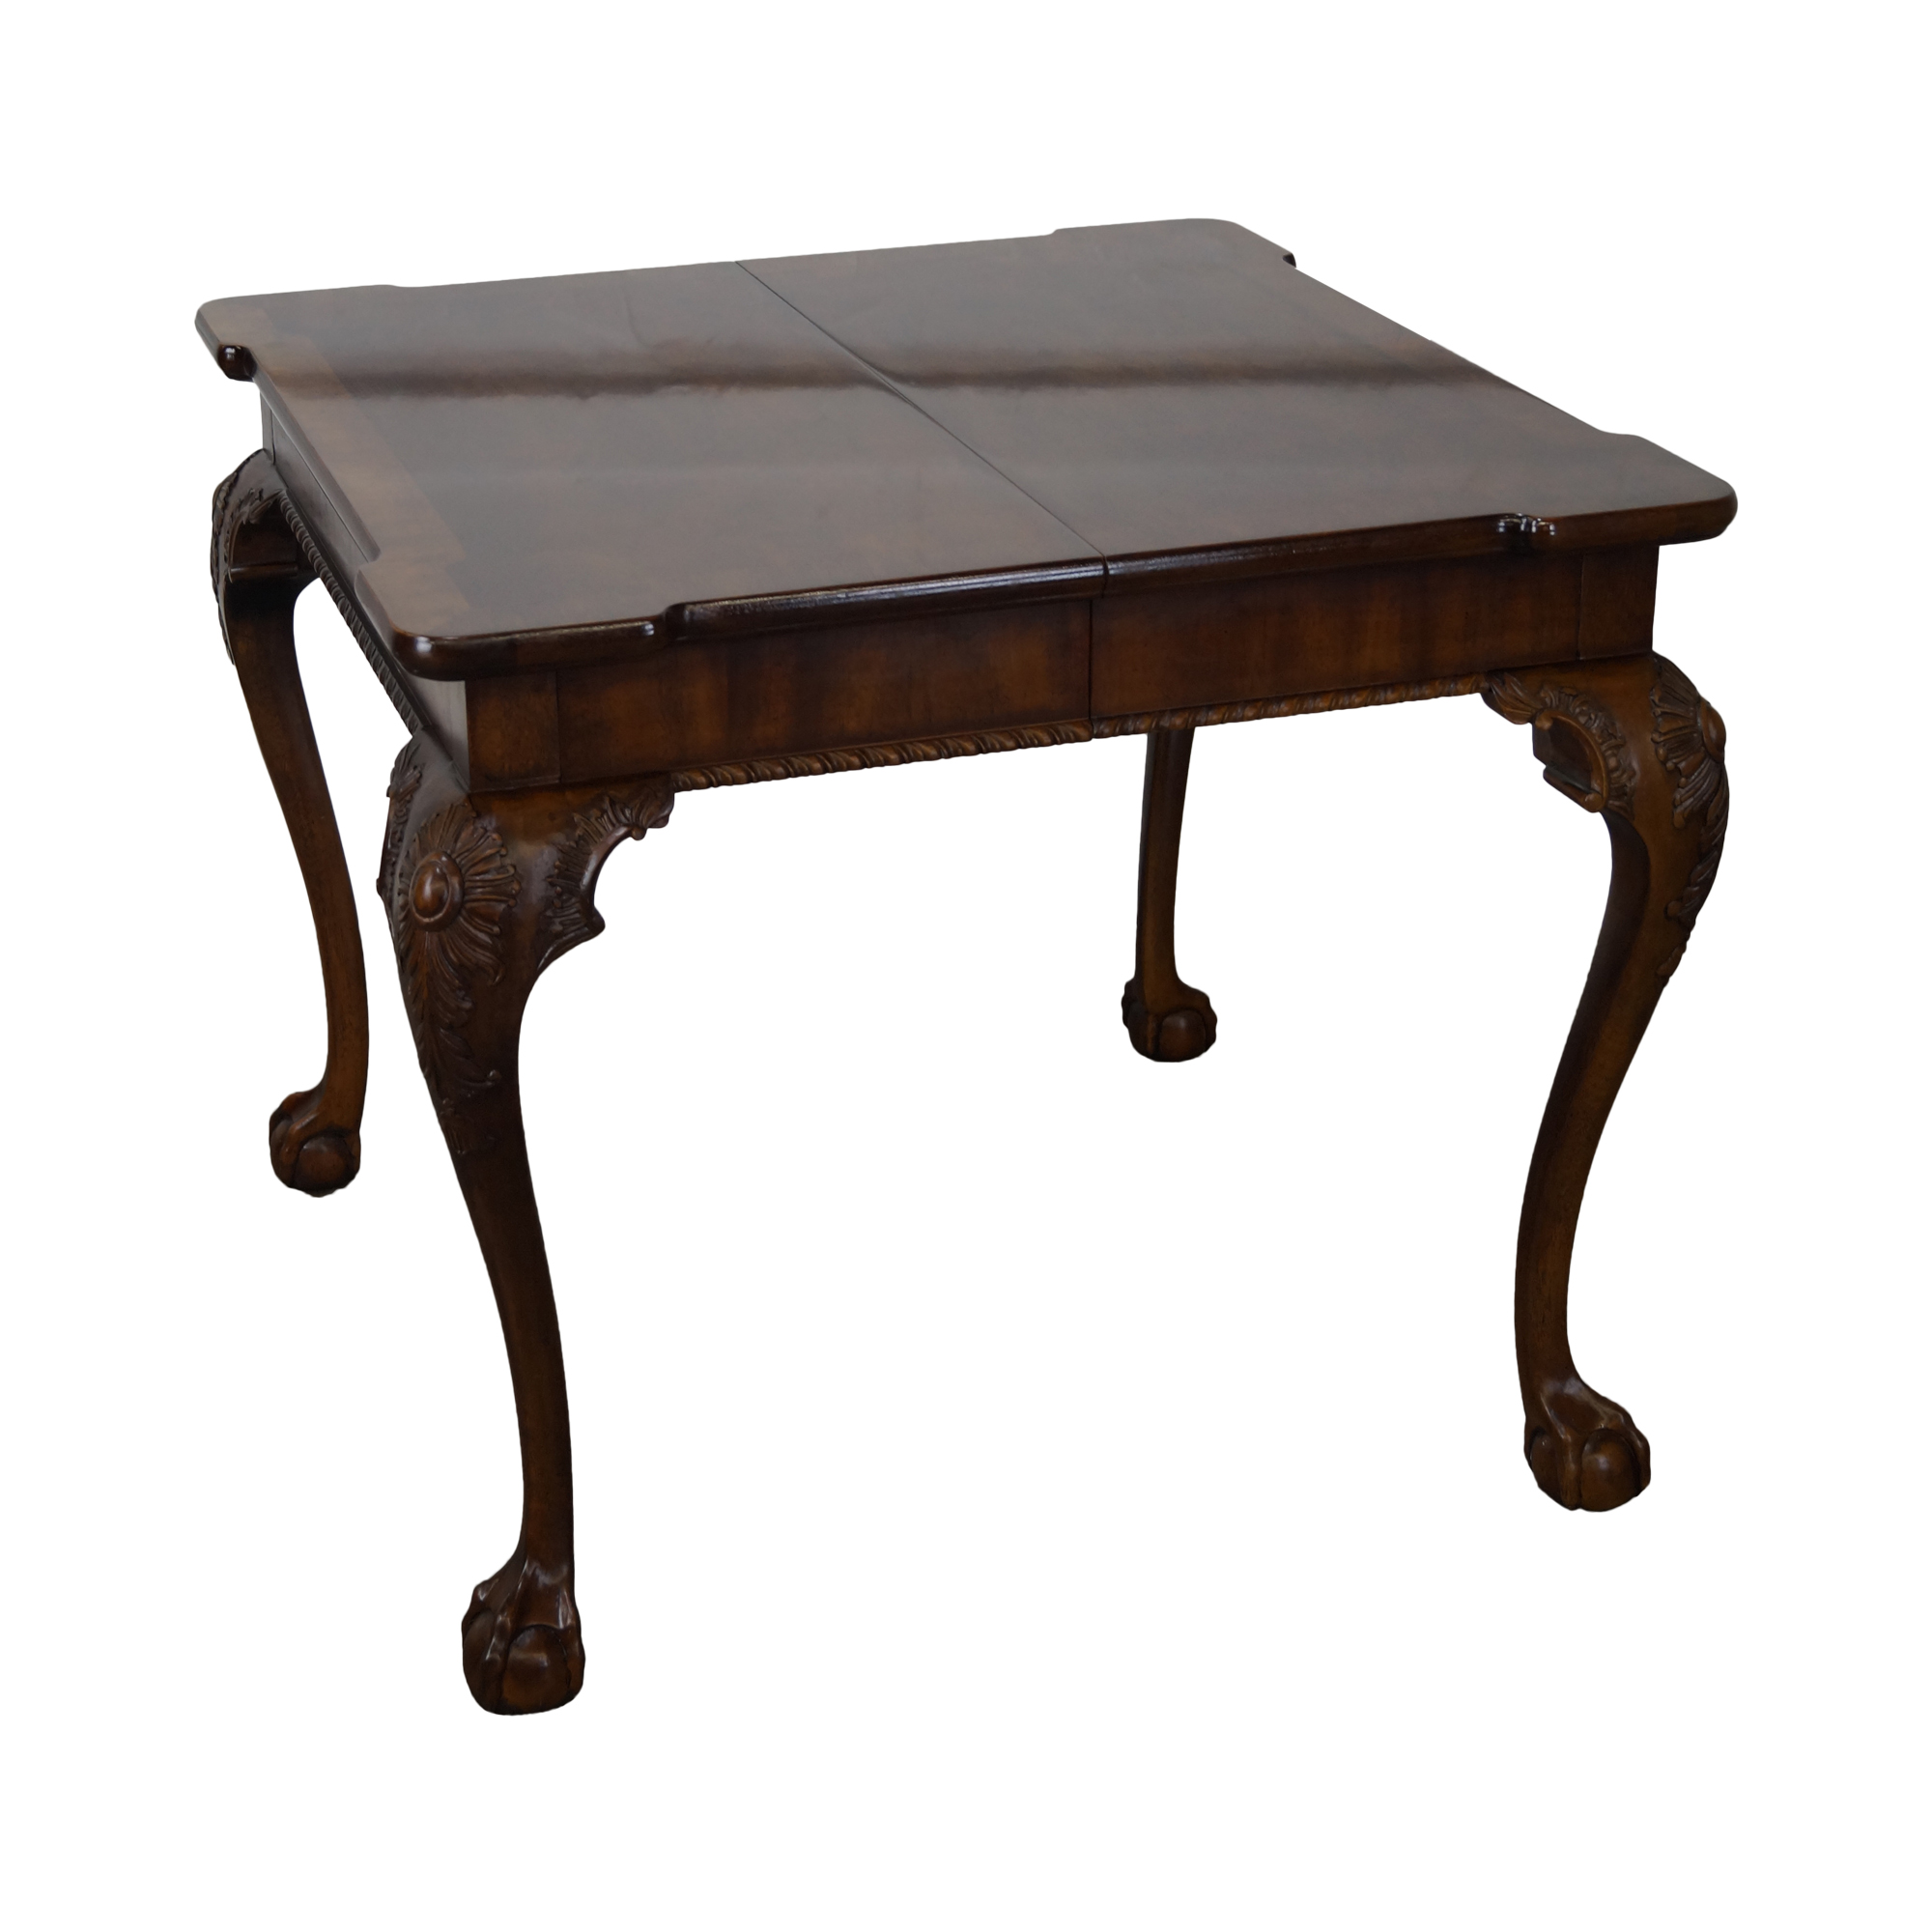 Henredon Mahogany Ball amp Claw Foot Dining Table Chairish : 02050703 3be5 4f88 b53c c4b6dfaccc82 from www.chairish.com size 2000 x 2000 png 1105kB